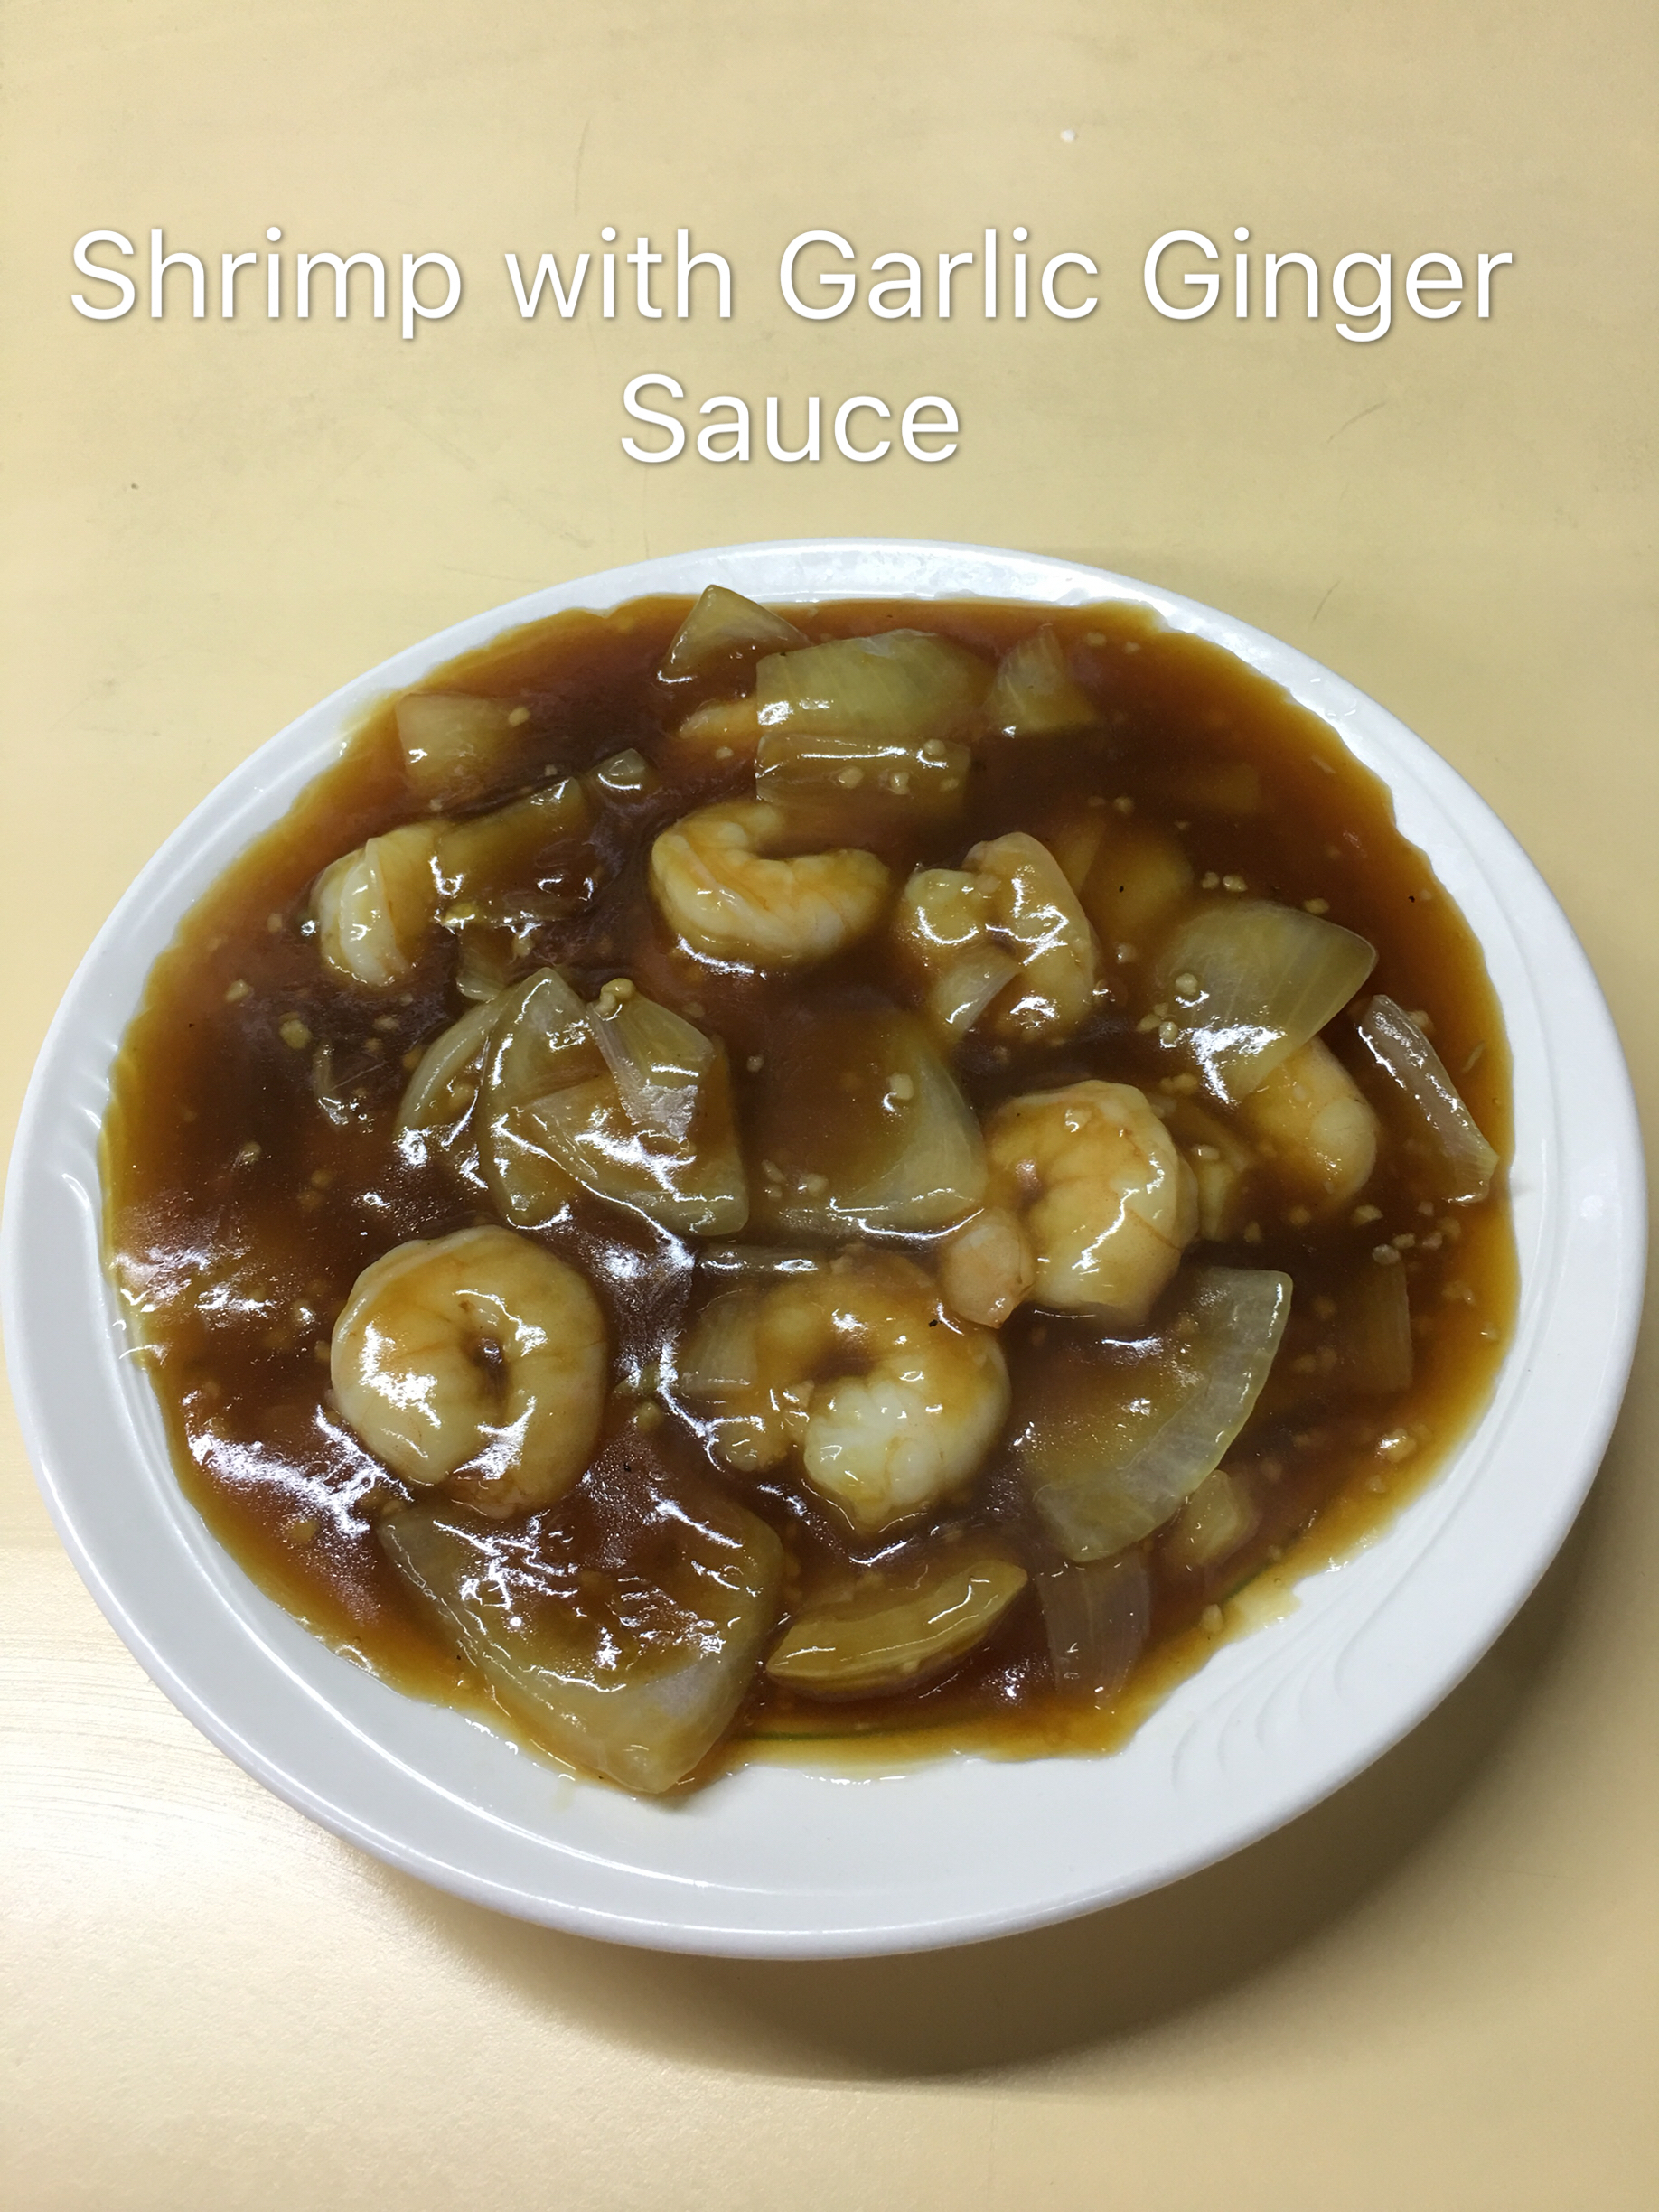 Shrimp with Garlic Ginger Sauce Image